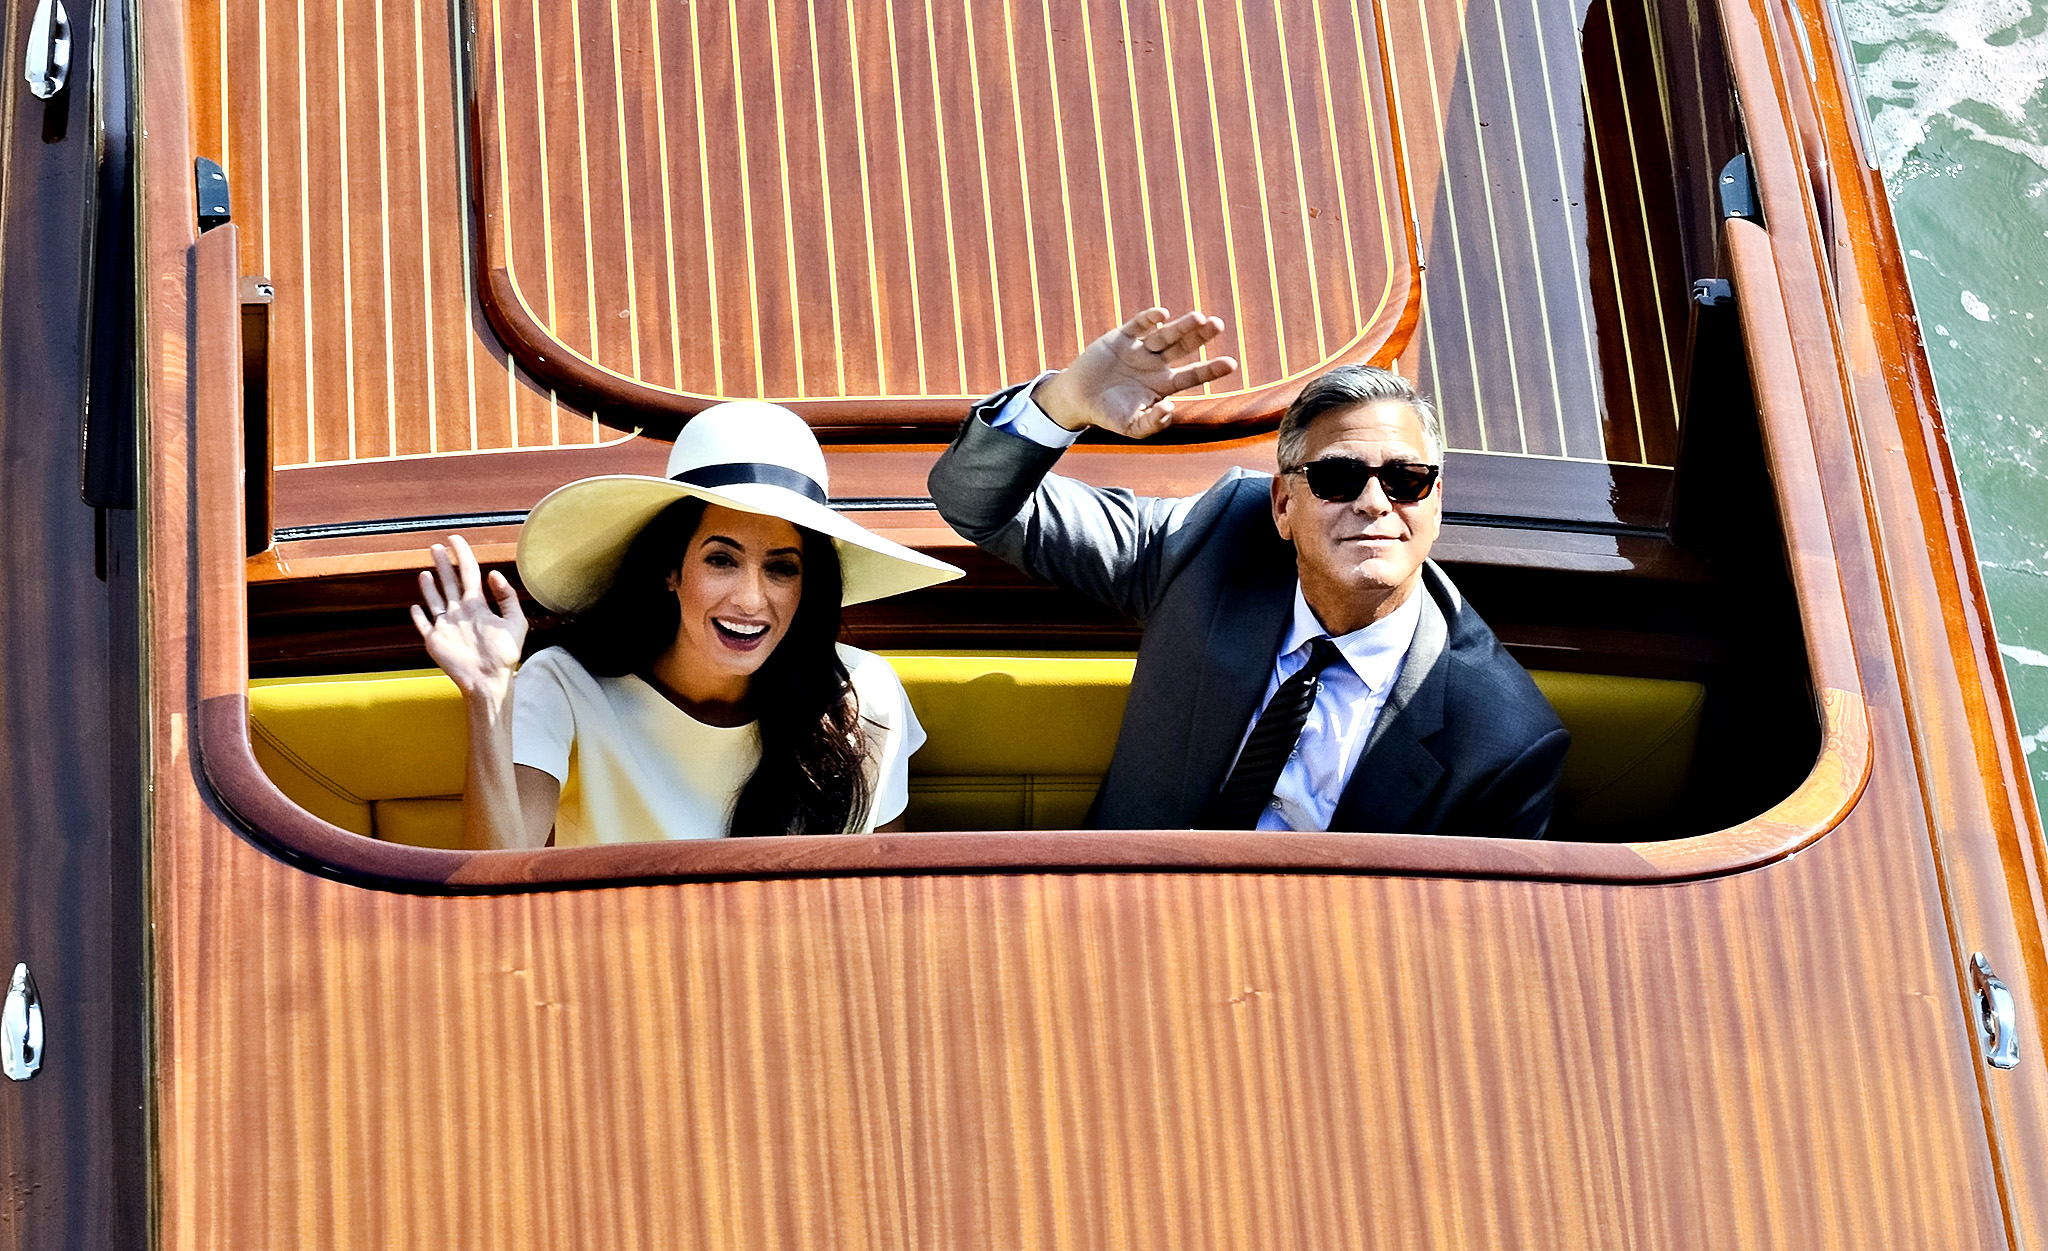 Actor George Clooney and Amal Alamuddin wave from a boat as they leave after a civil wedding ceremony at the town hall in Venice, Italy, Monday, Sept. 29, 2014. George Clooney married human rights lawyer Amal Alamuddin Saturday, the actor's representative said, out of sight of pursuing paparazzi and adoring crowds.